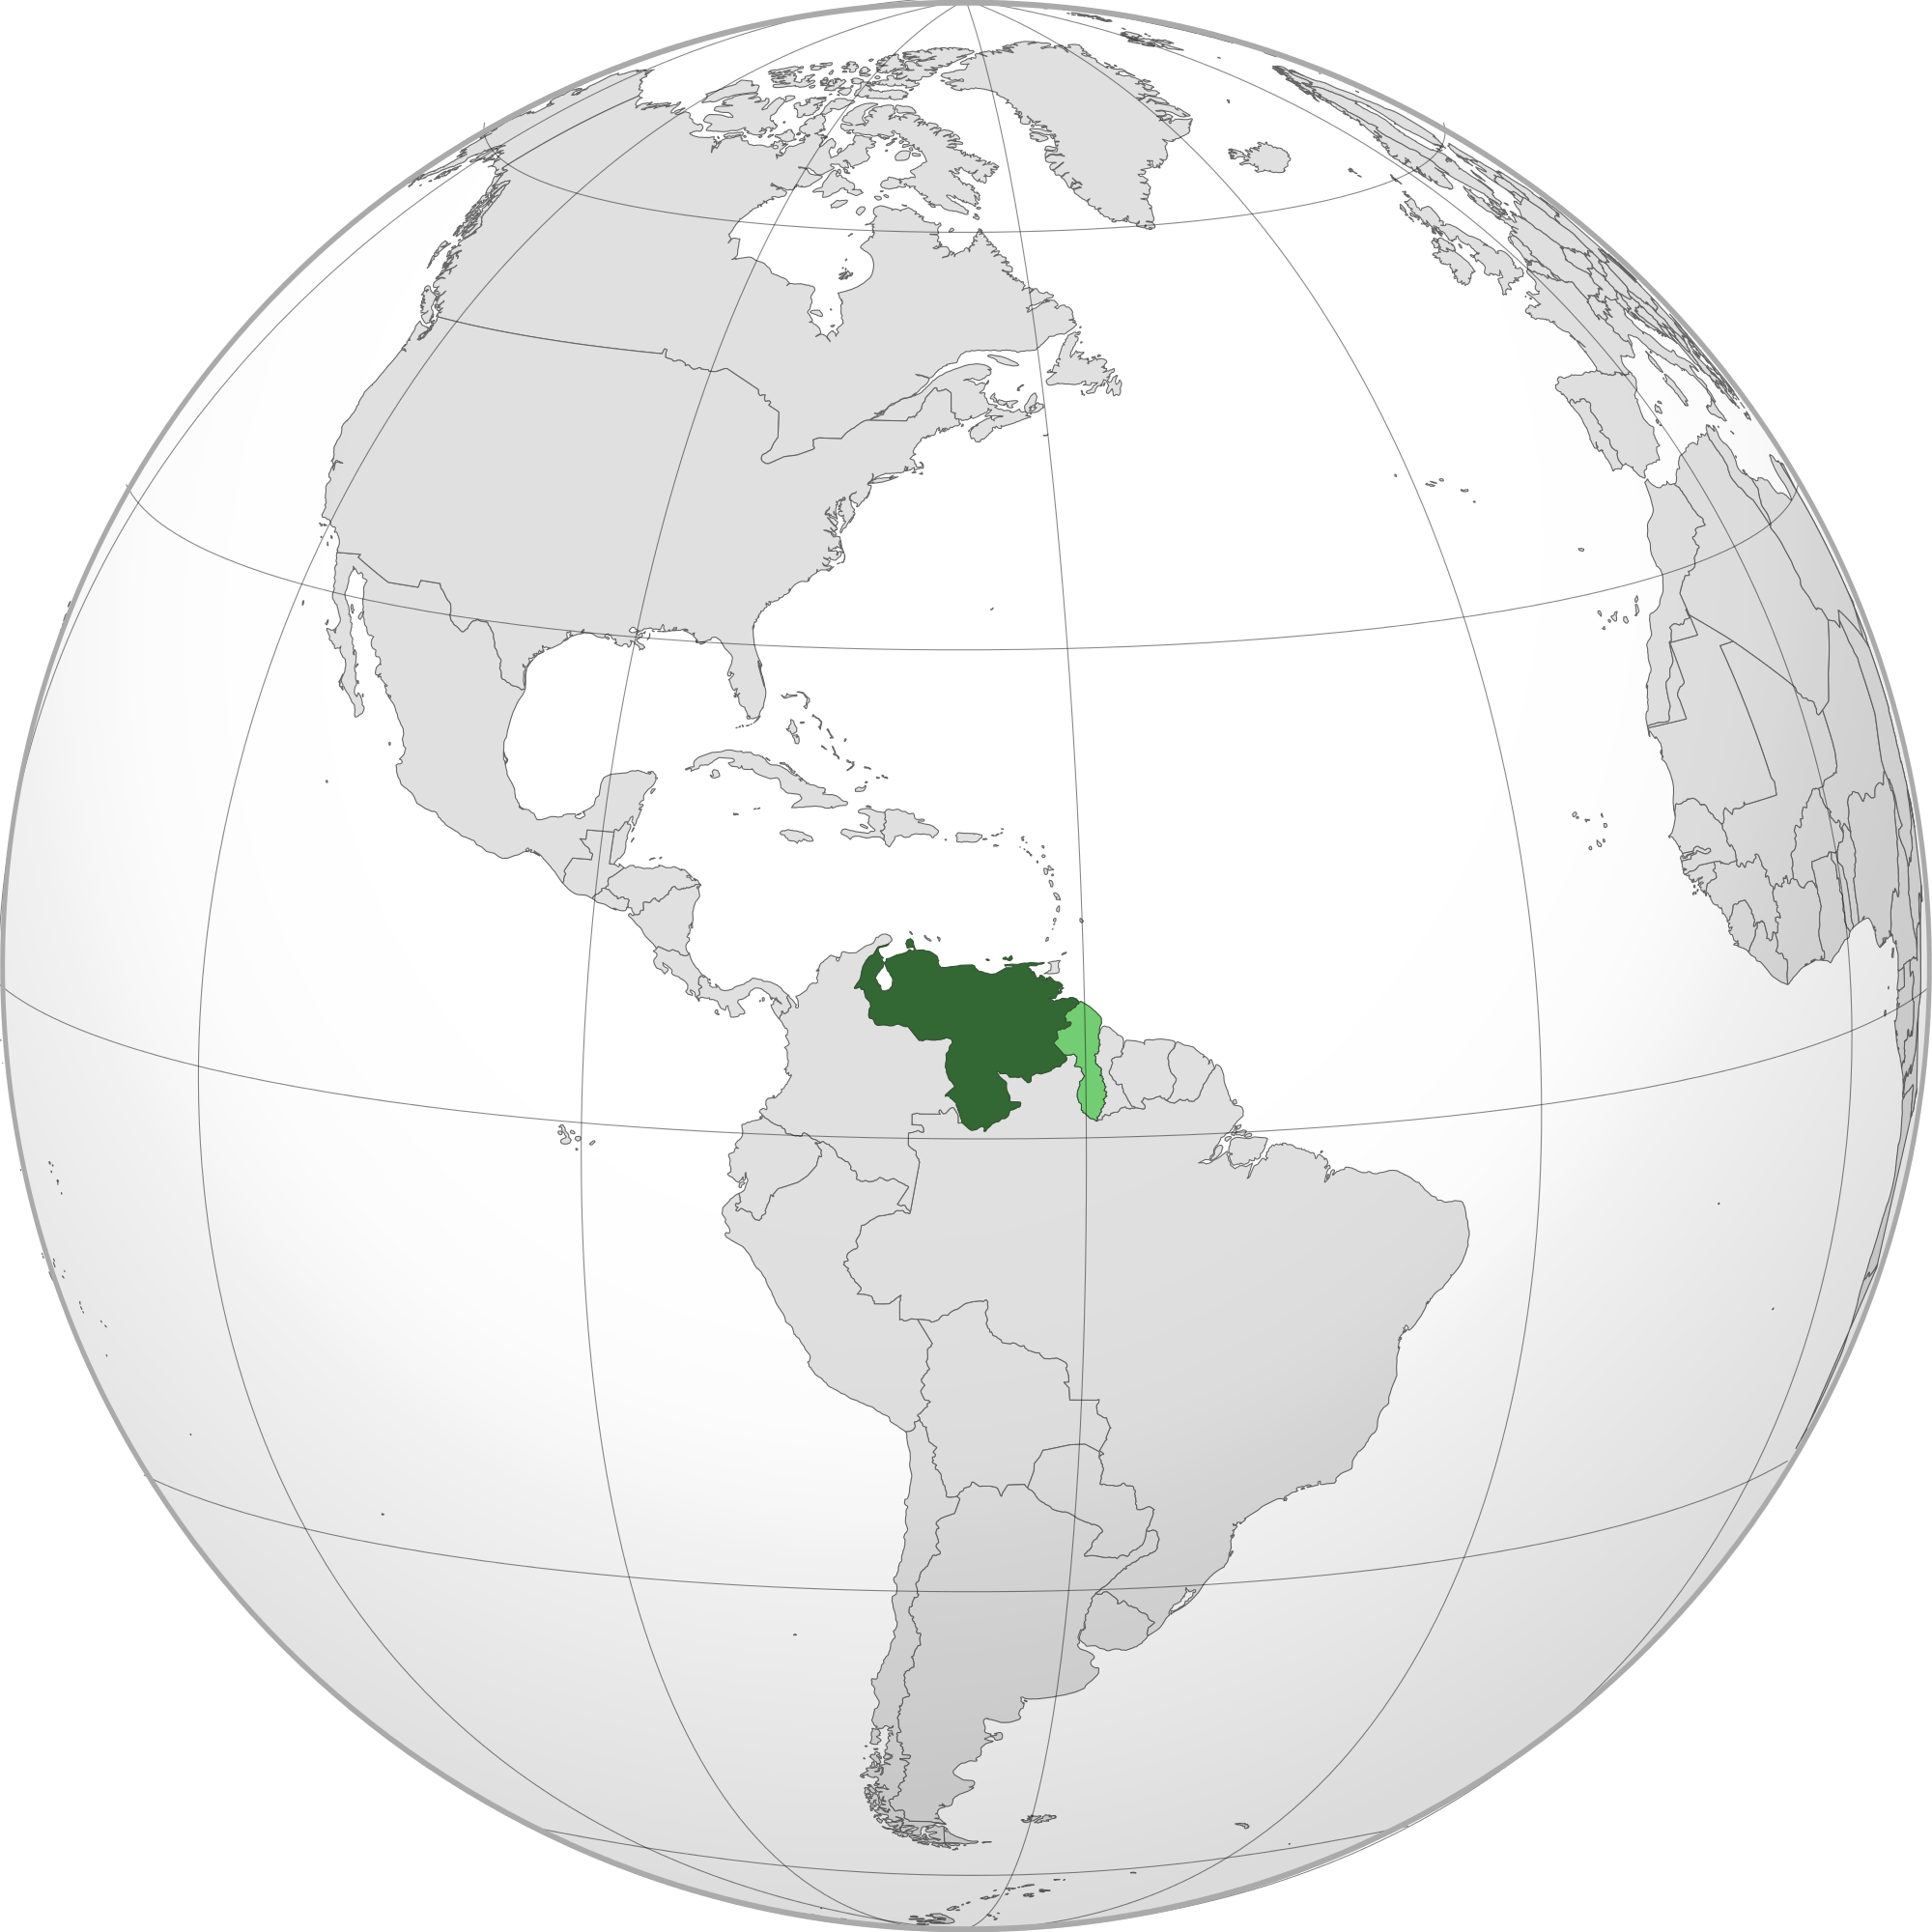 Location of the venezuela in the World Map